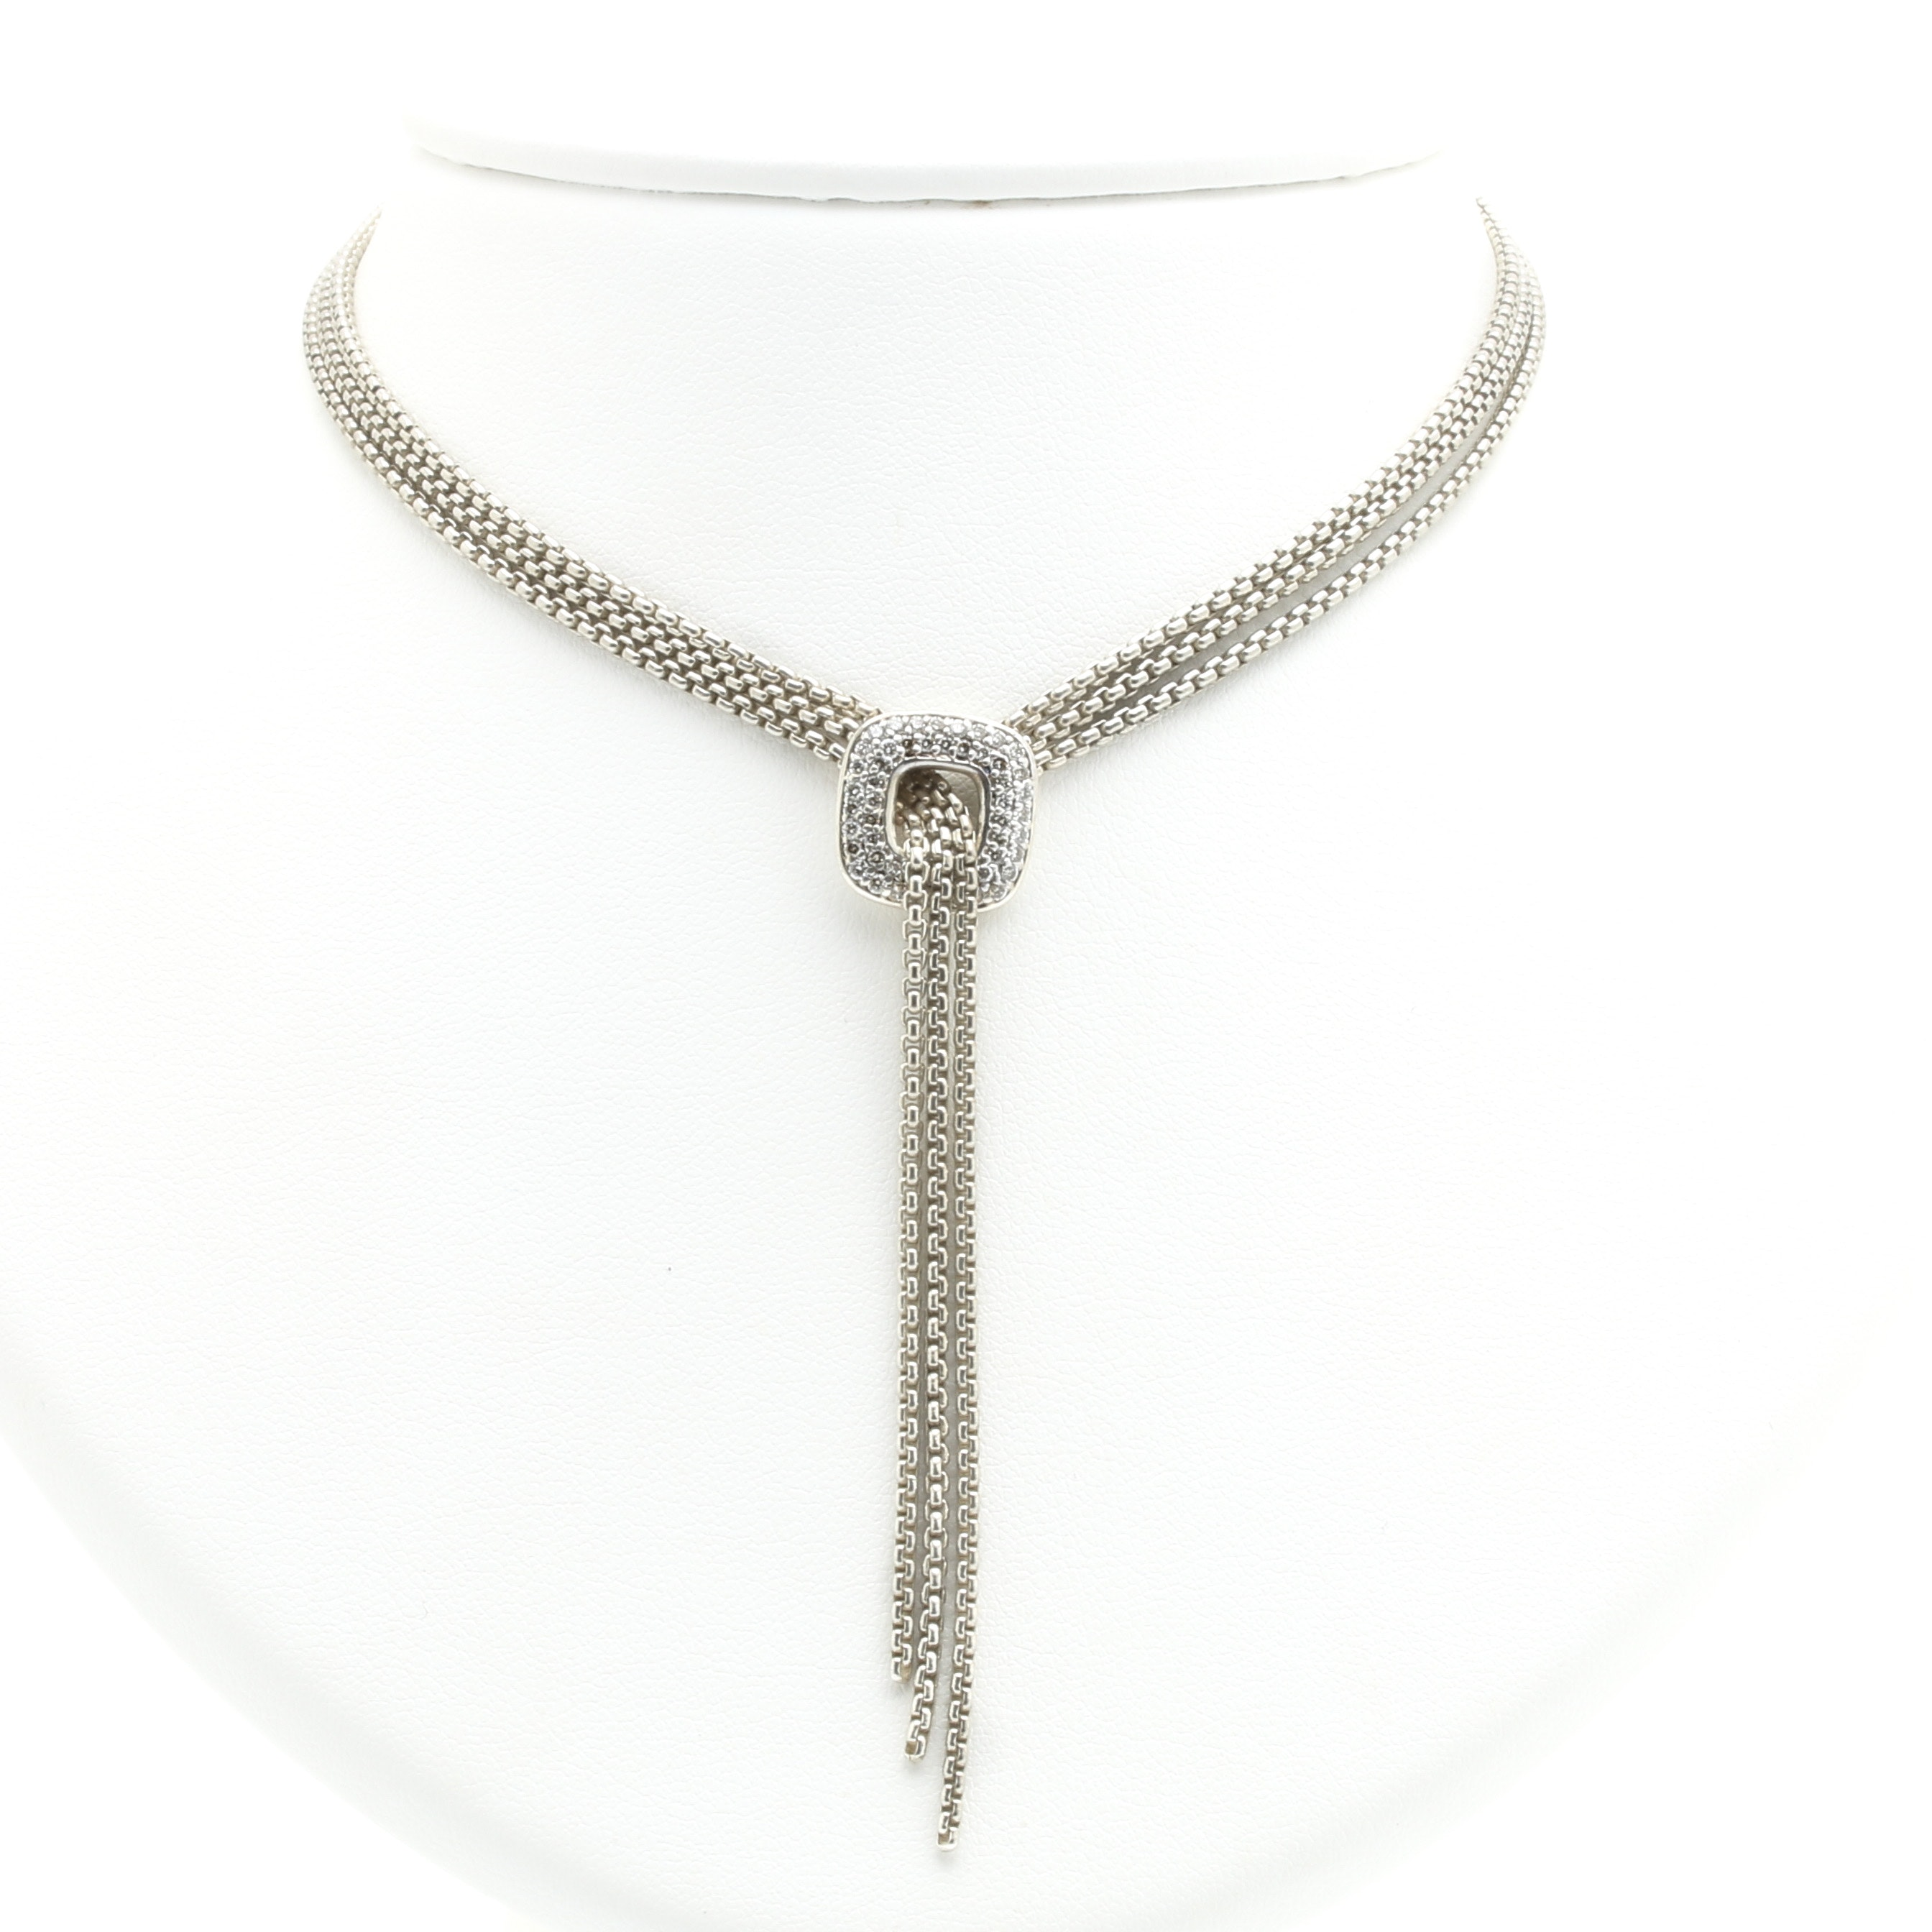 David Yurman Sterling Silver and Diamond Lariat Necklace